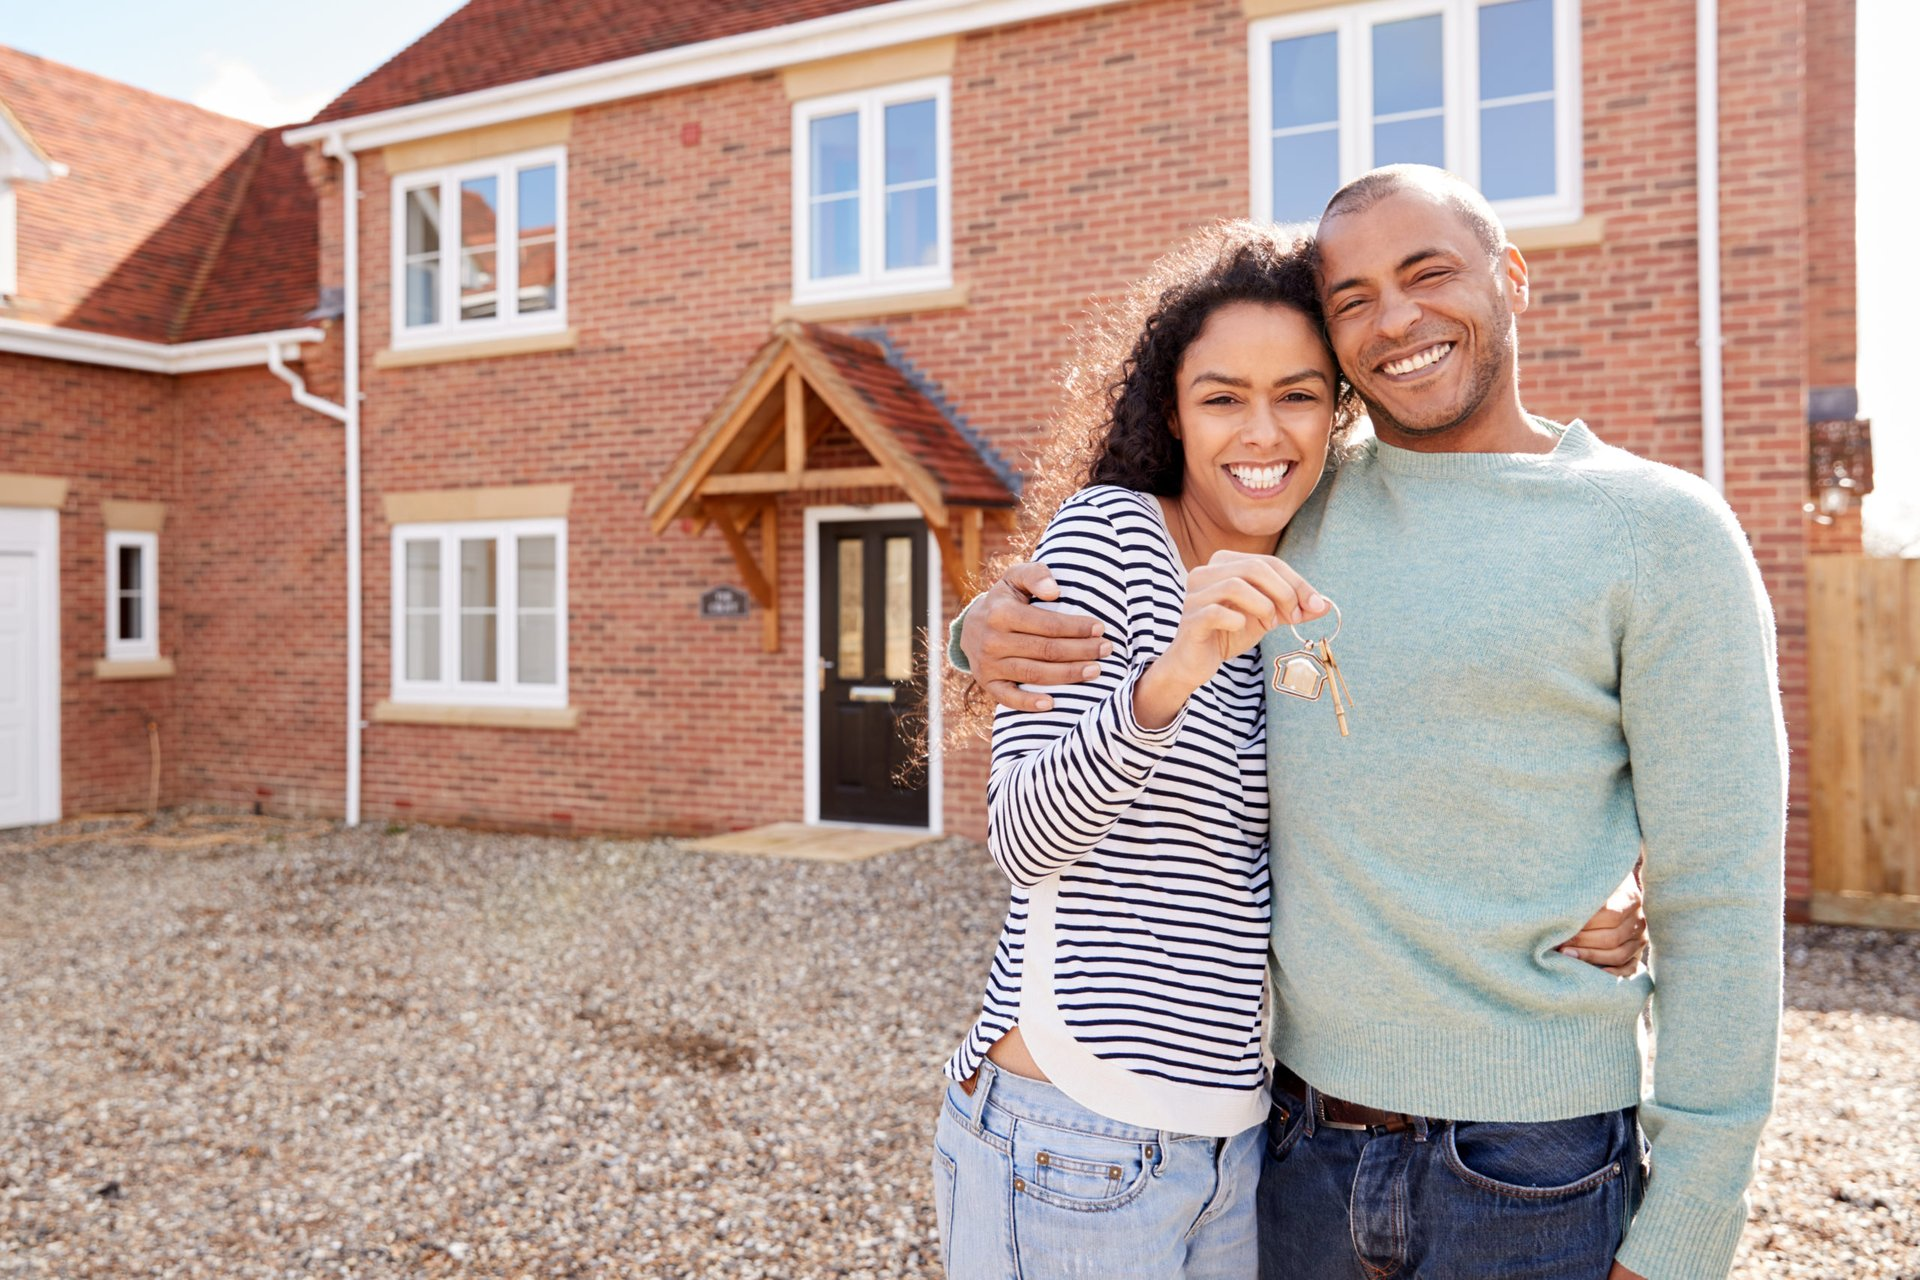 Happy couple buying a home in a new city